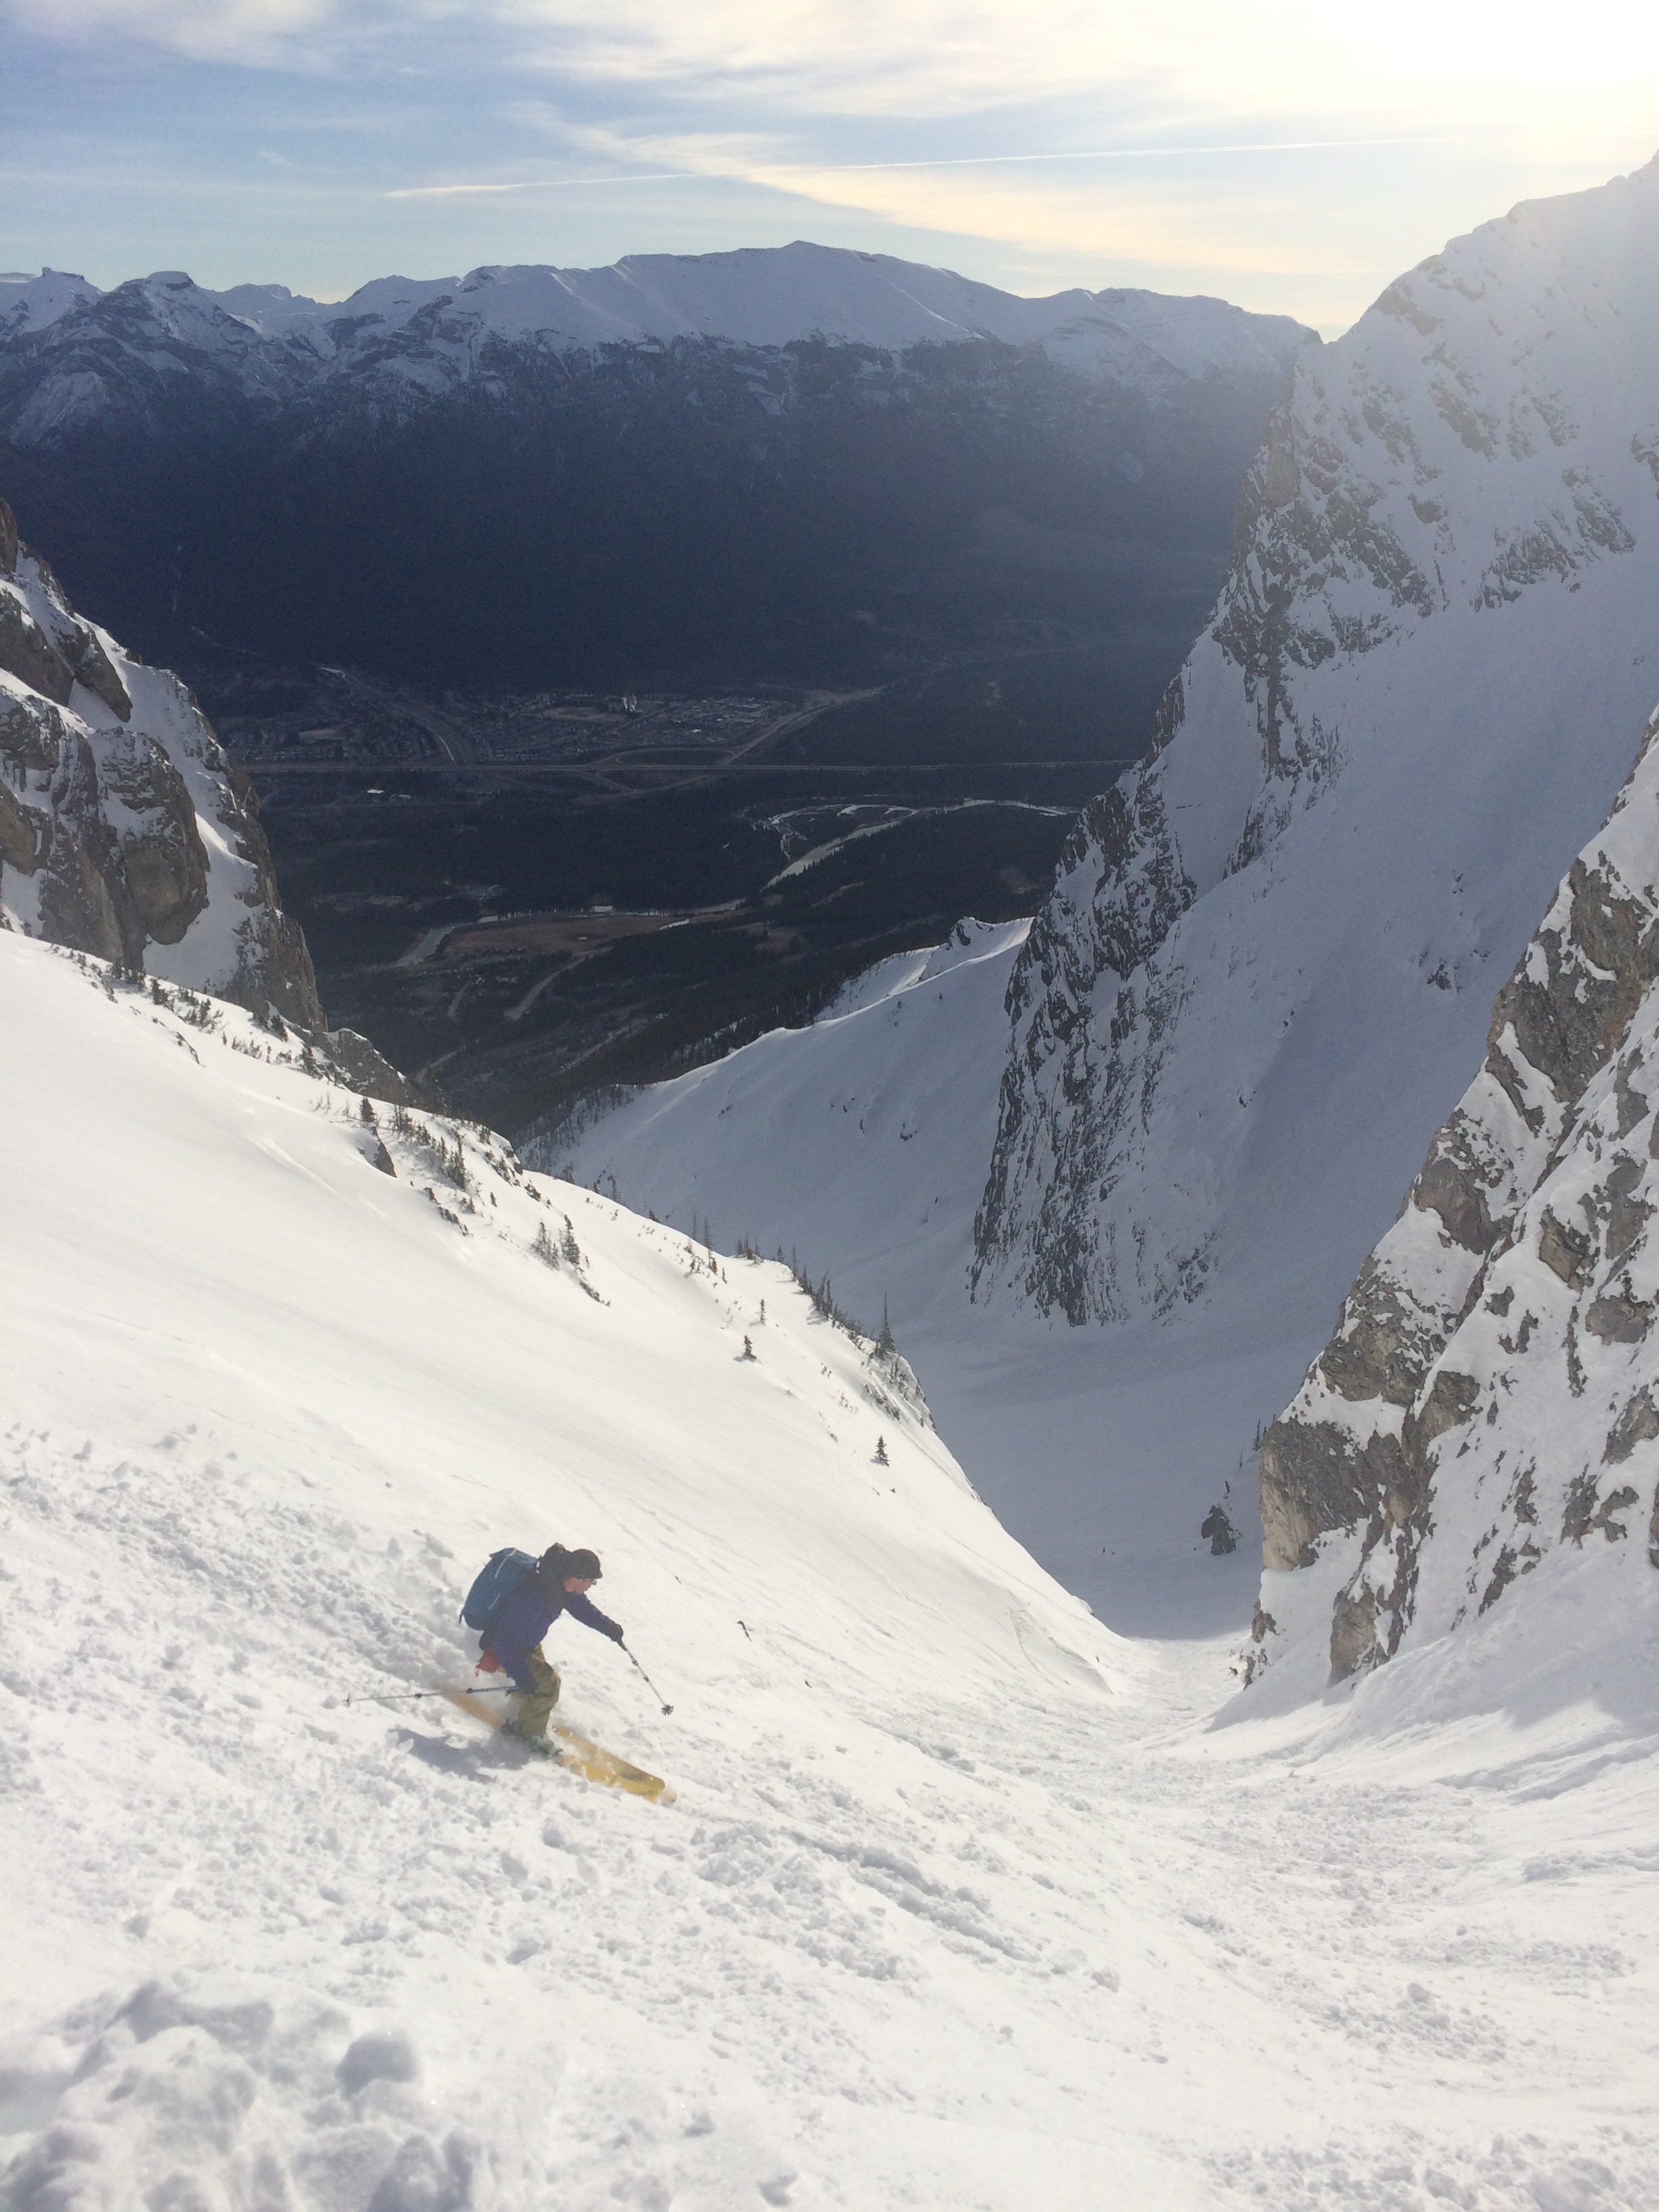 Looking down Canmore Couloir